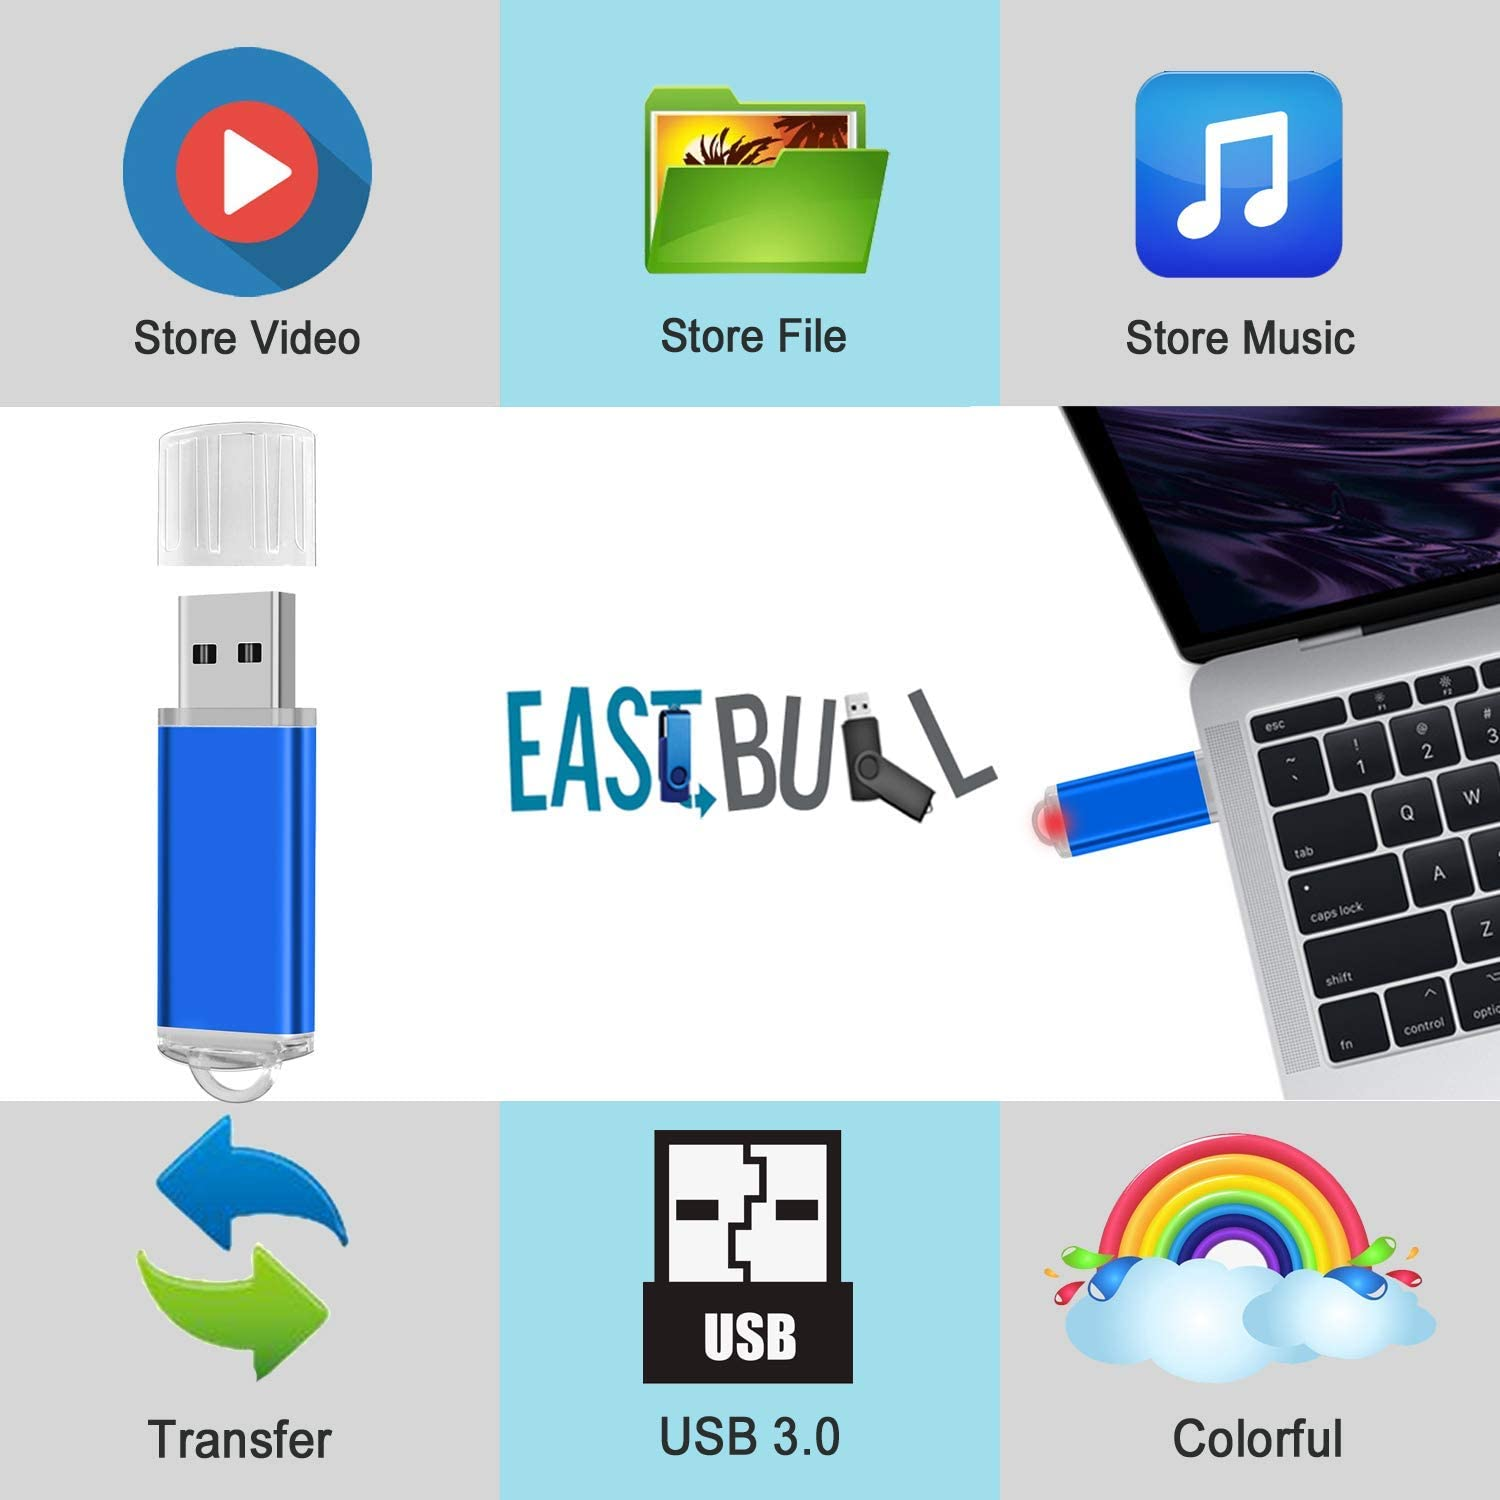 4GB USB Flash Drives 10 Pack EASTBULL USB 2.0 Thumb Drives Memory Sticks USB Sticks with 10 Lanyards for Storage Multicolors-10PCS